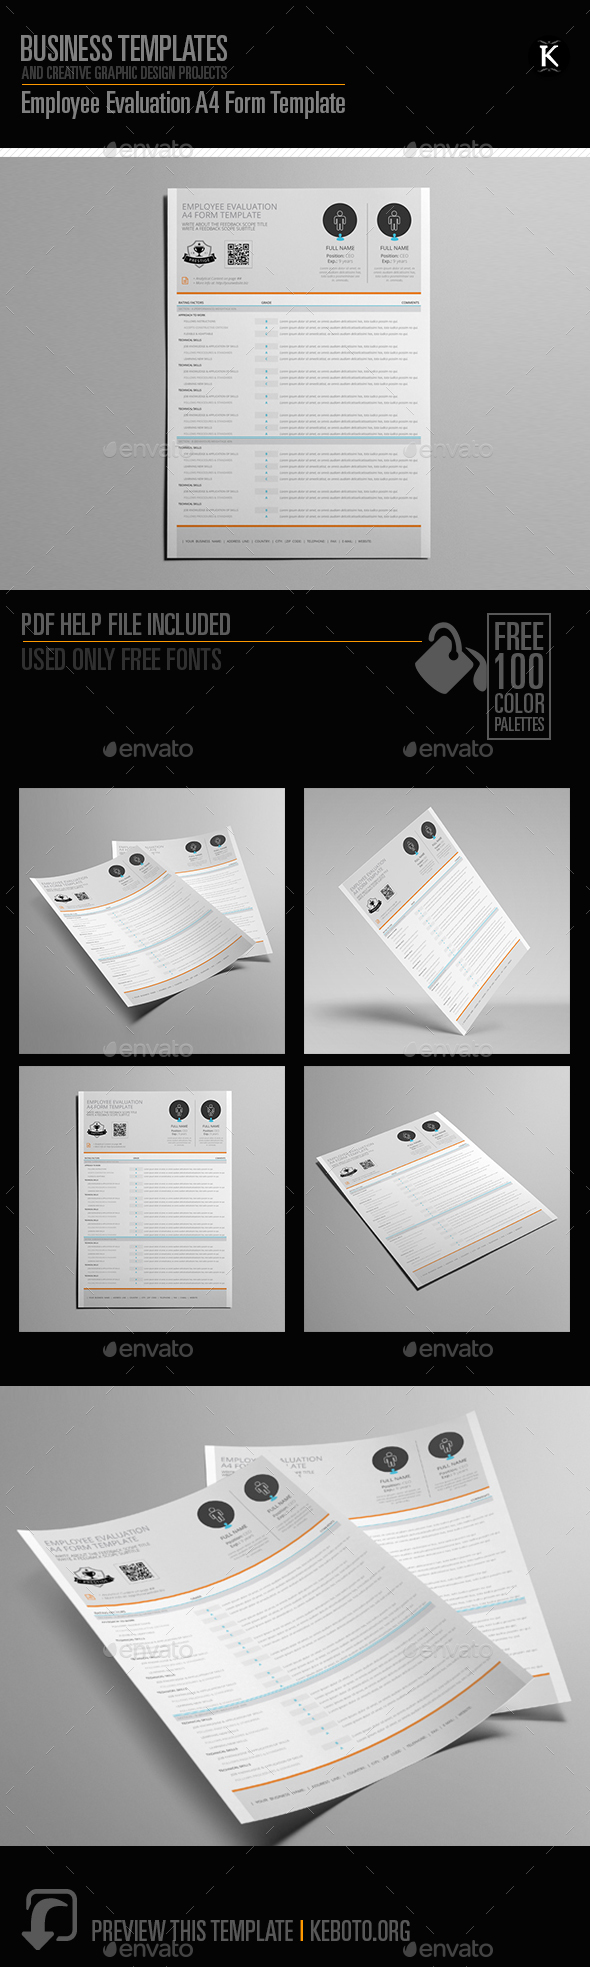 Employee Evaluation A4 Form Template - Miscellaneous Print Templates